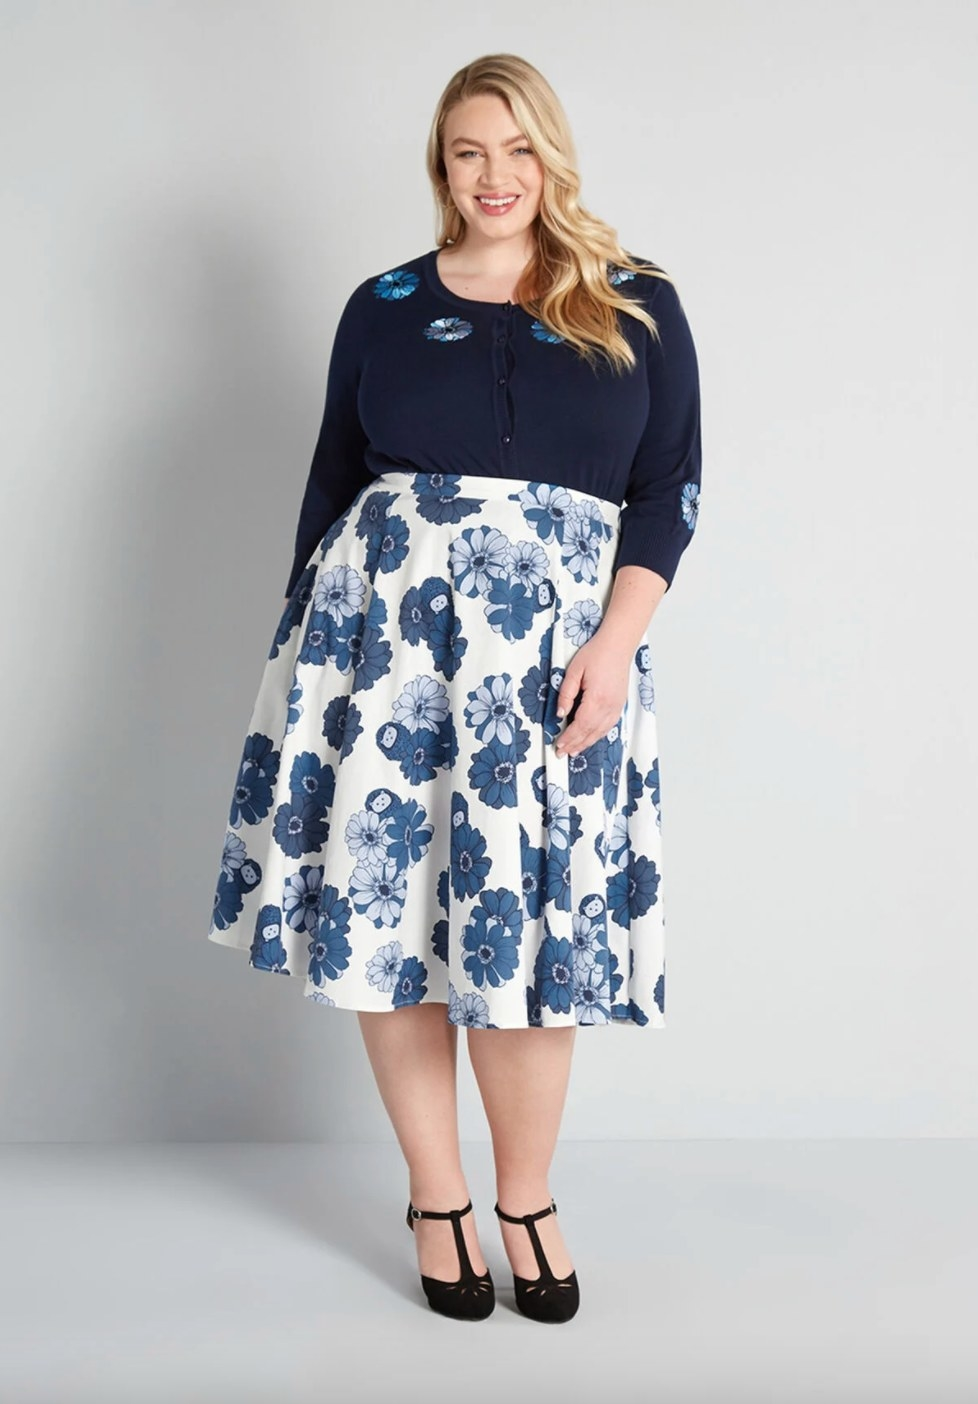 Model wearing a midi skirt with white and blue flowers